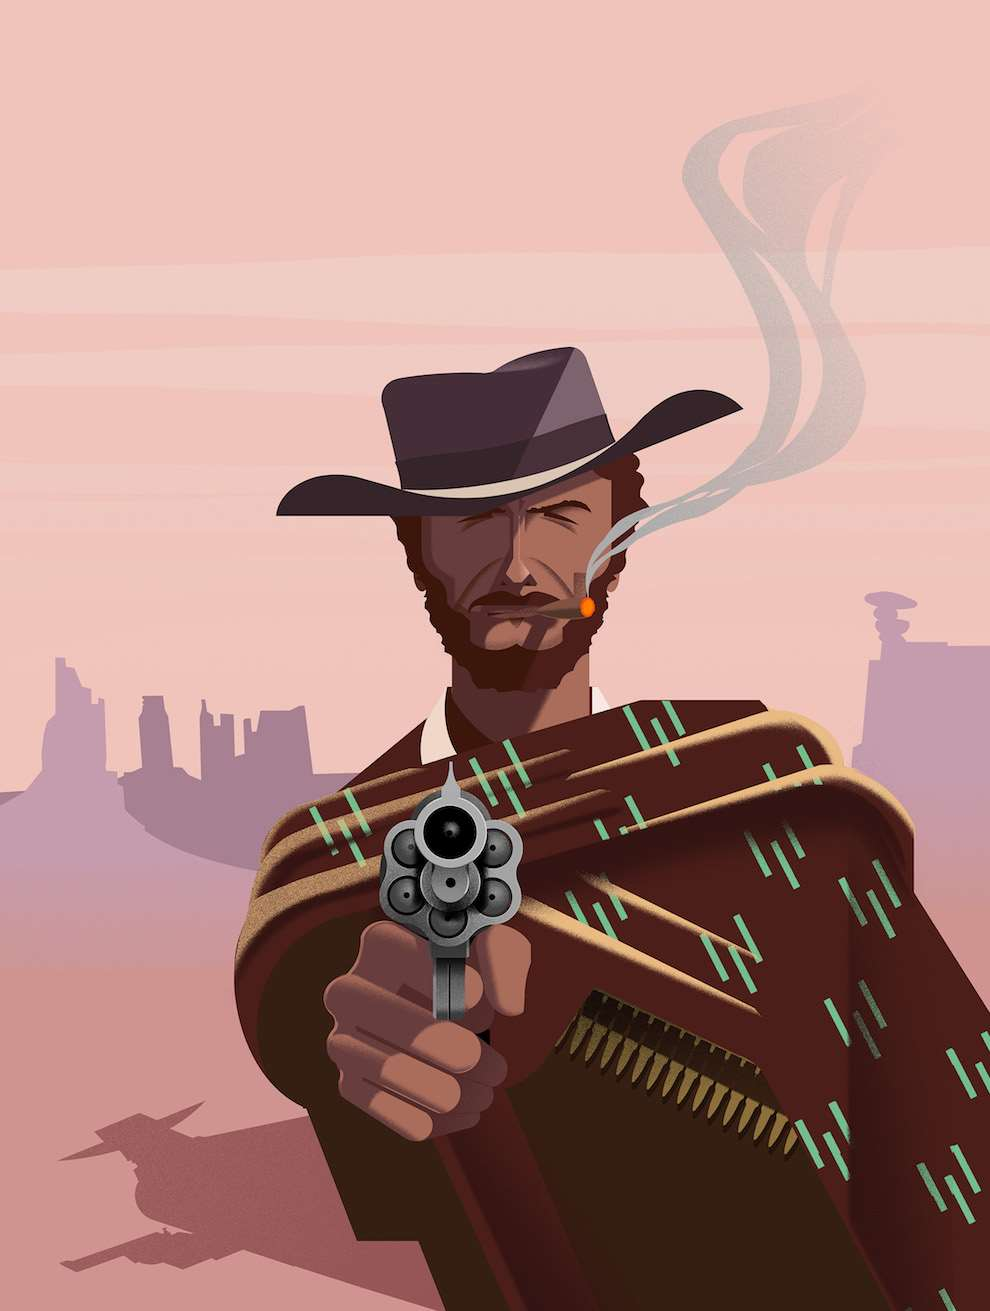 Blue Bateau, Textural and graphic illustration of a cowboy shooting his gun